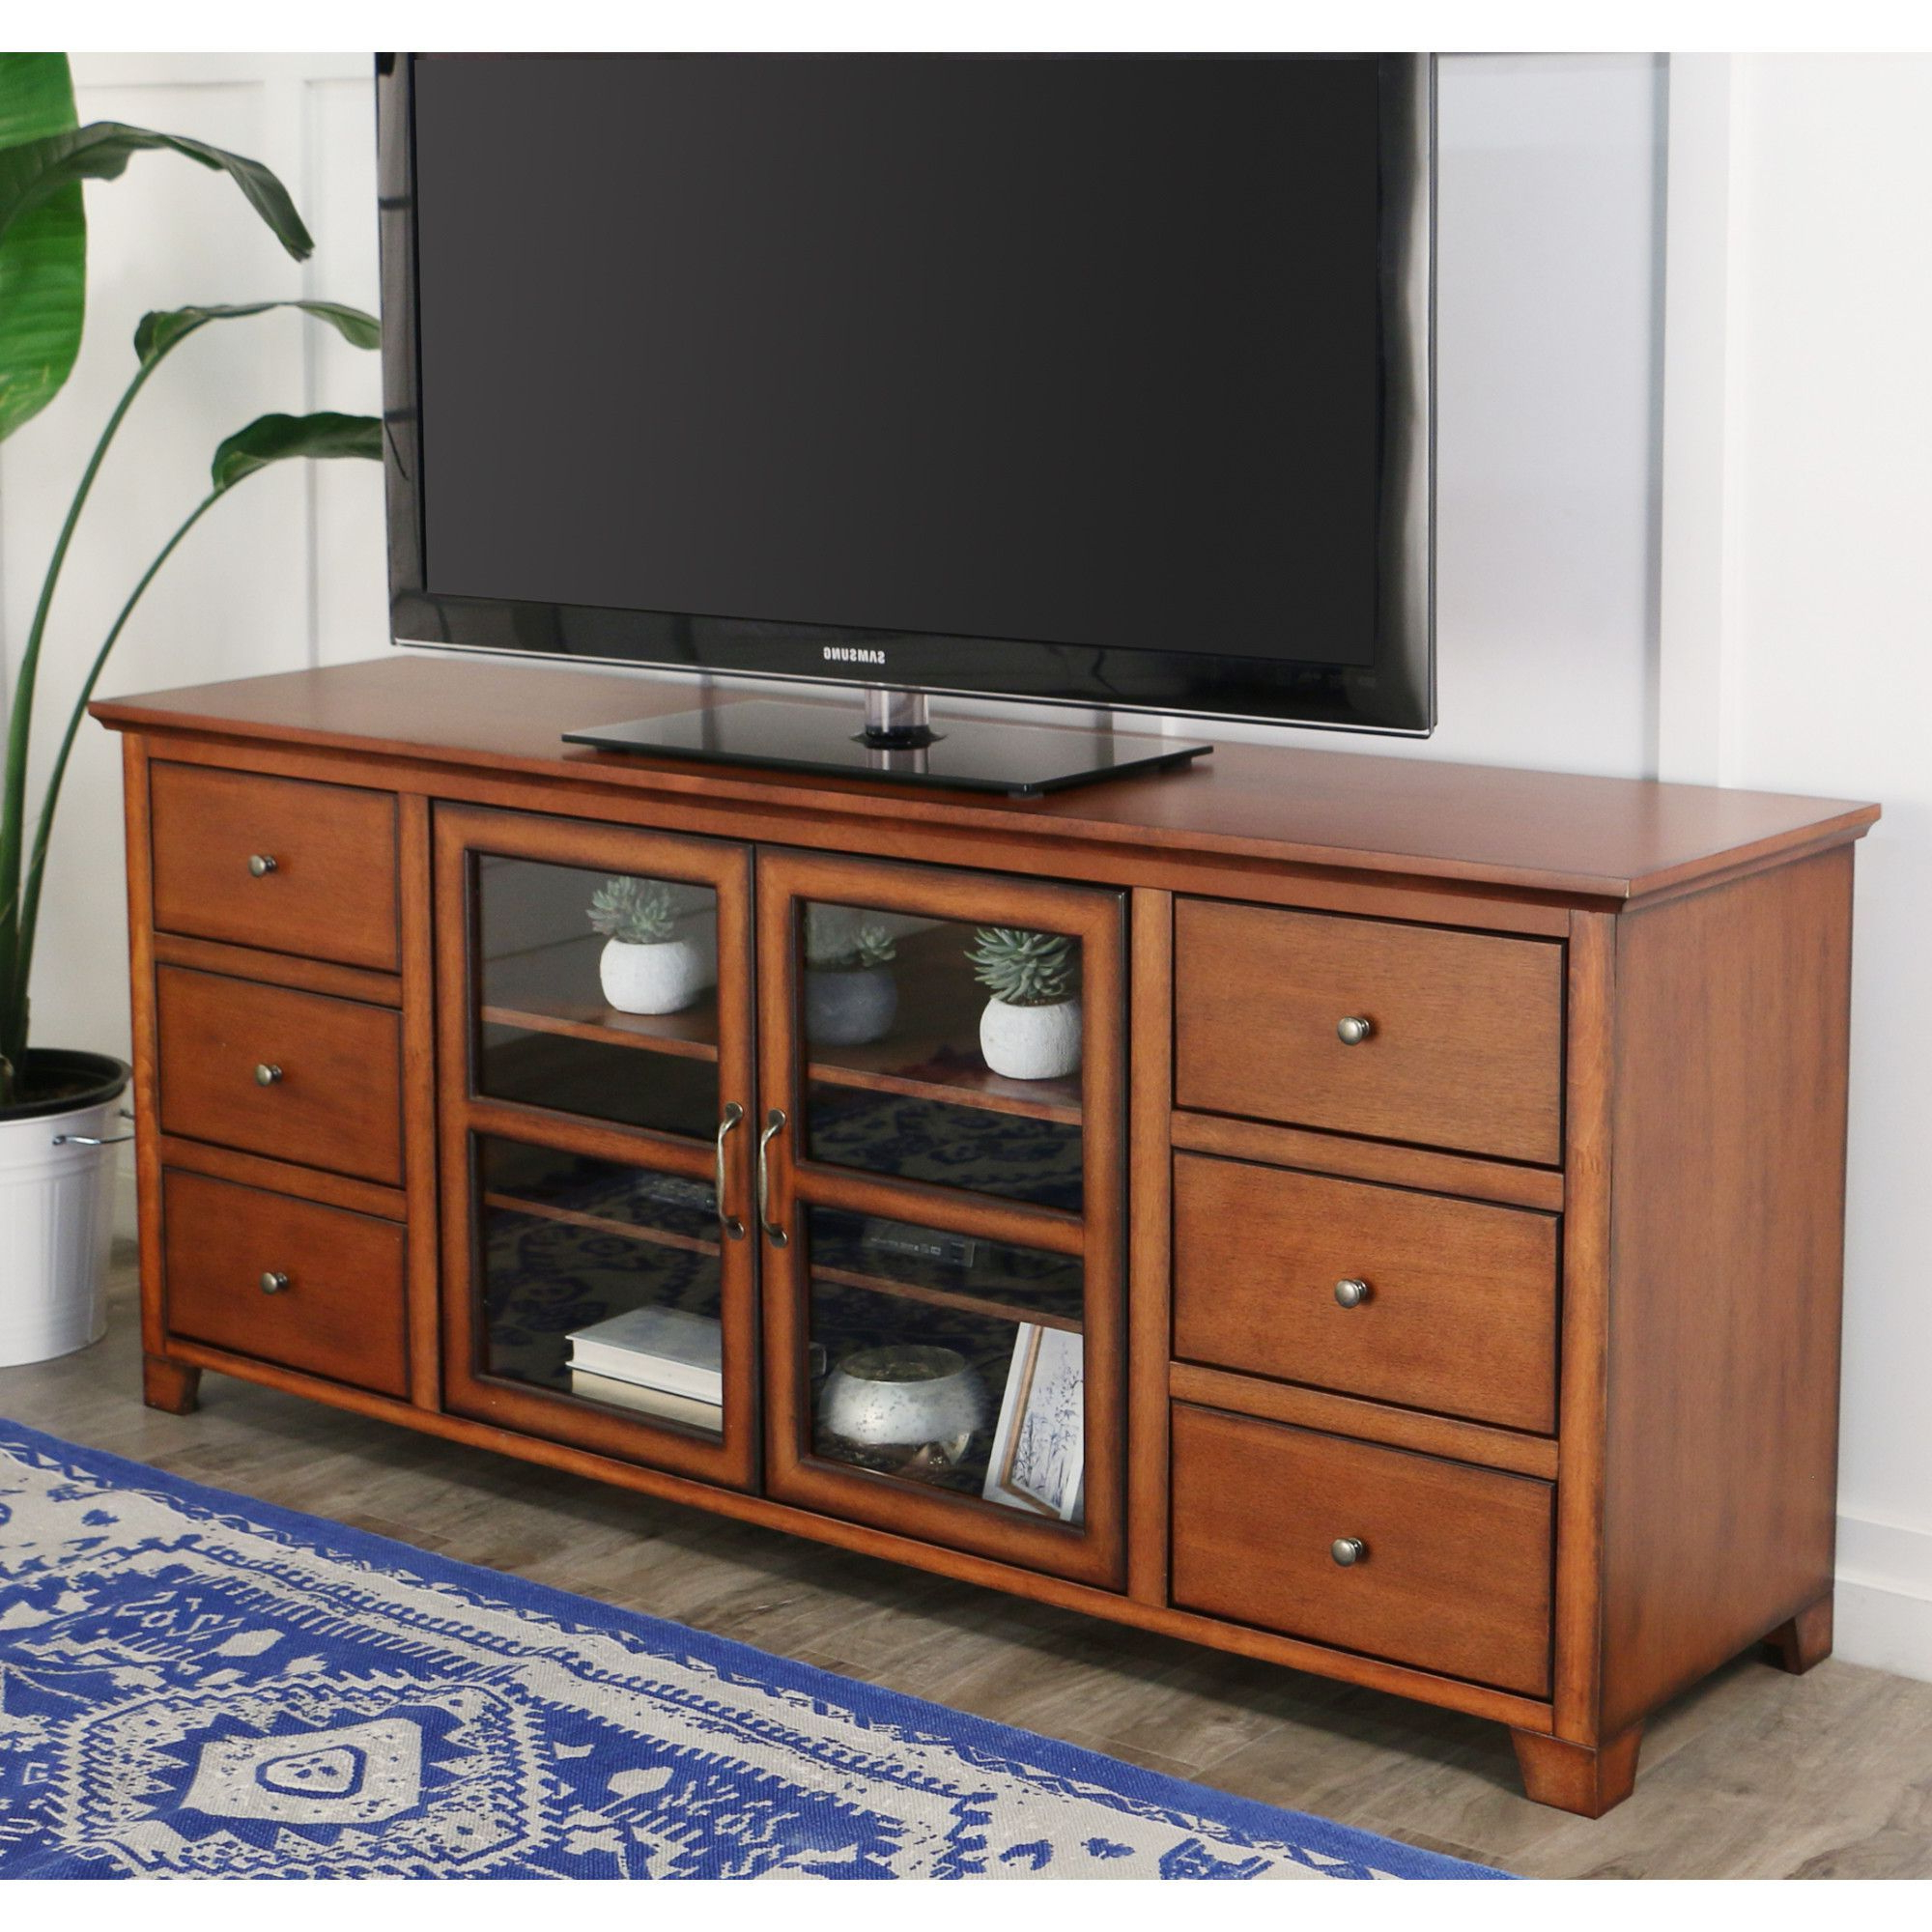 "70"" Paradigm Wood Tv Console – Rustic Brown 